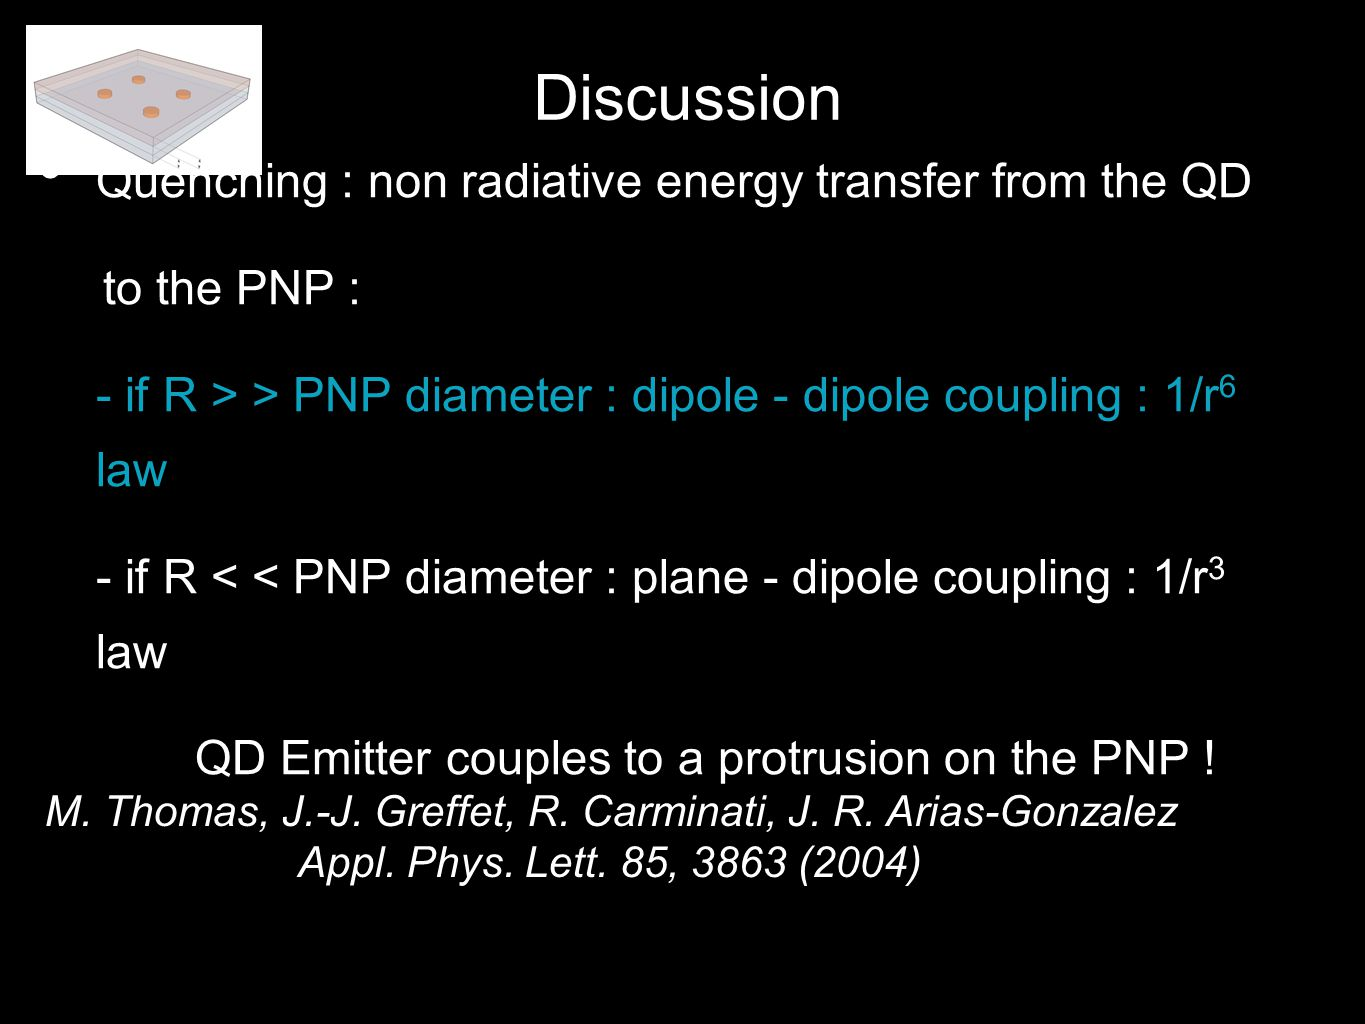 Quenching : non radiative energy transfer from the QD to the PNP : - if R > > PNP diameter : dipole - dipole coupling : 1/r 6 law - if R < < PNP diameter : plane - dipole coupling : 1/r 3 law QD Emitter couples to a protrusion on the PNP .